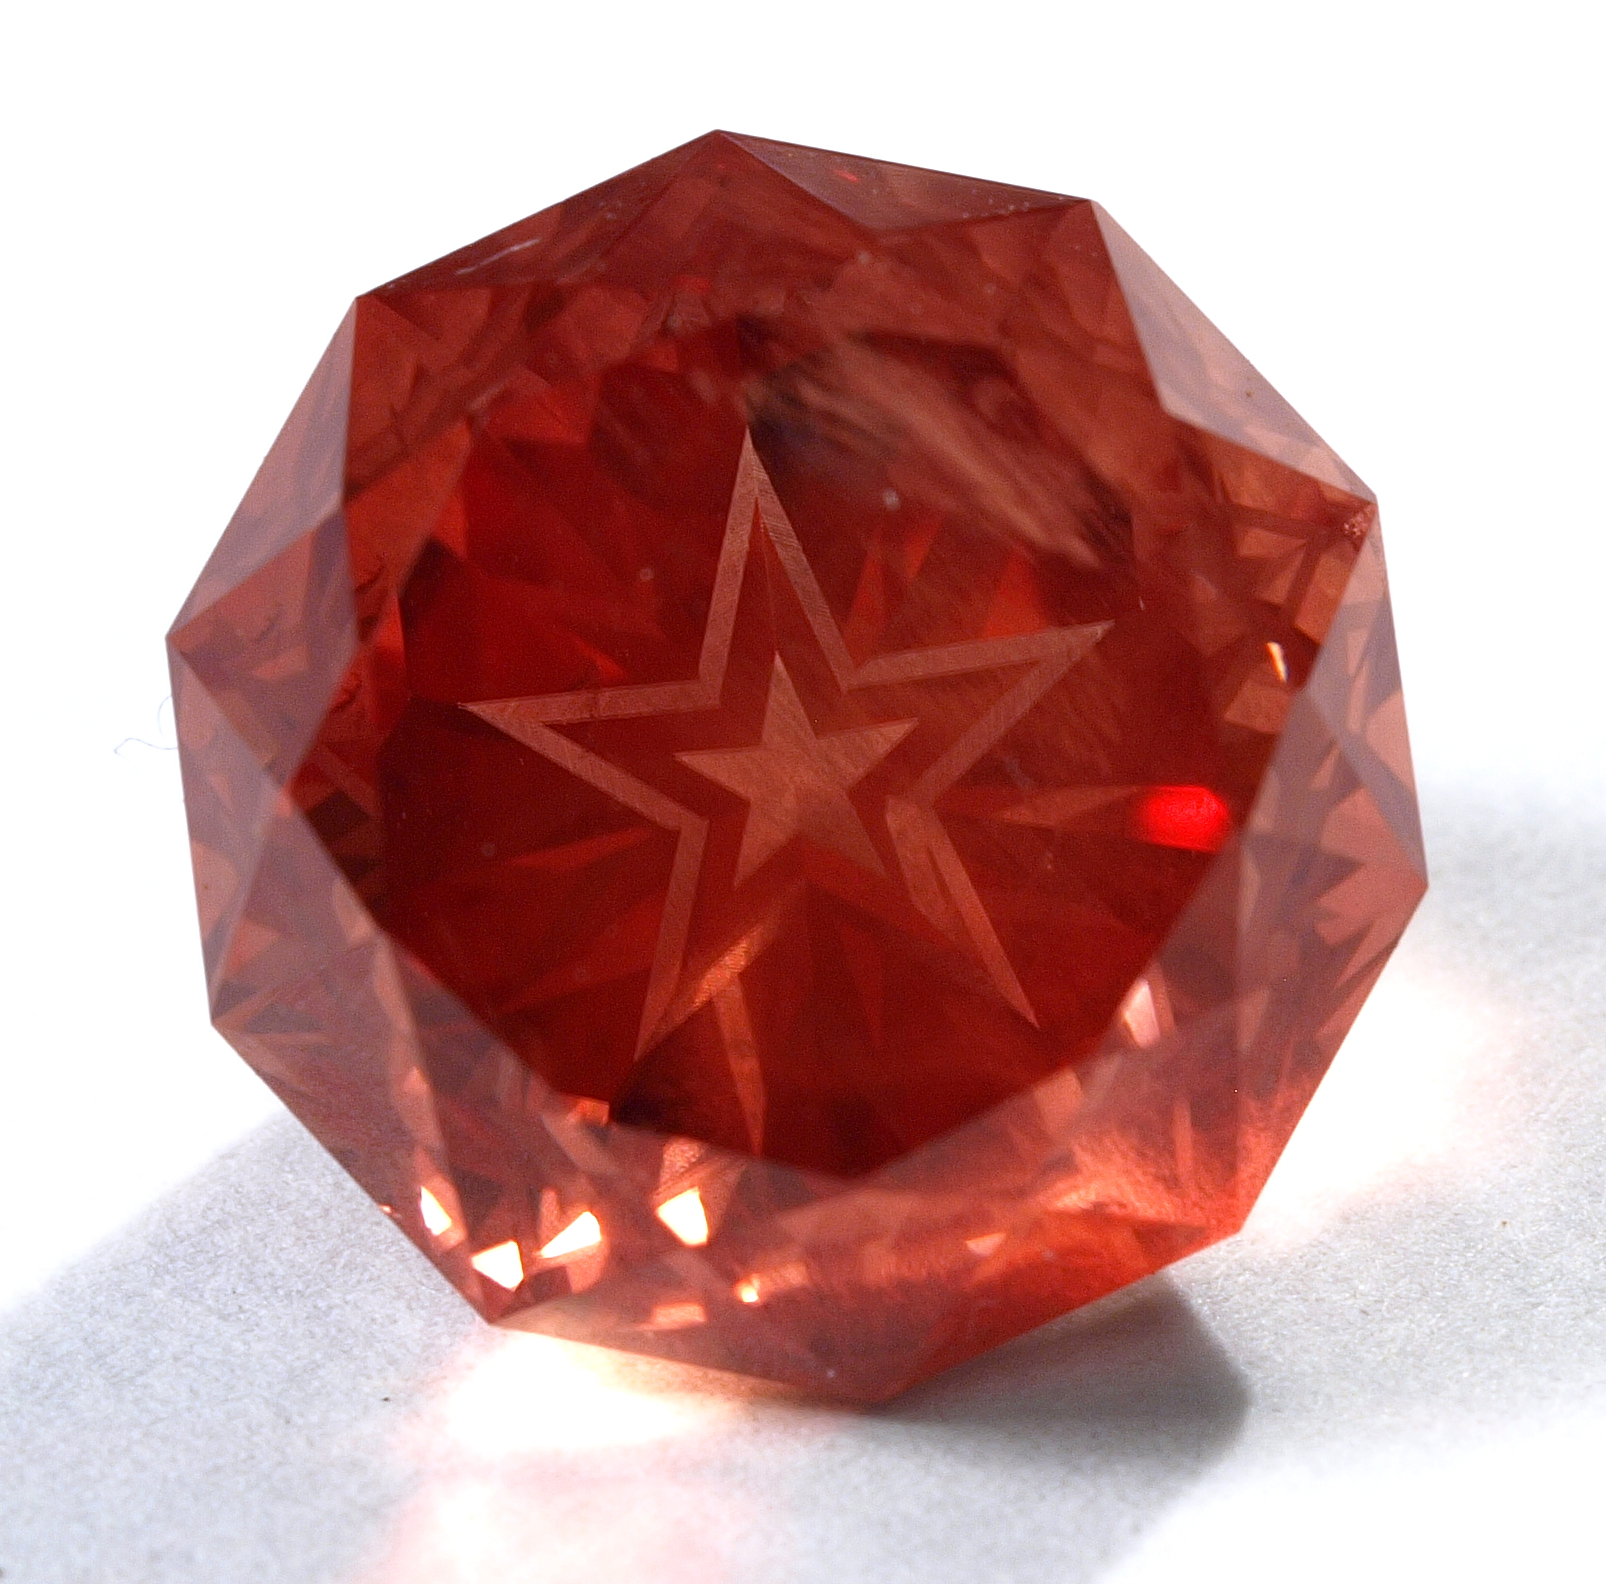 Decagon Star Cut Gem Sunstone